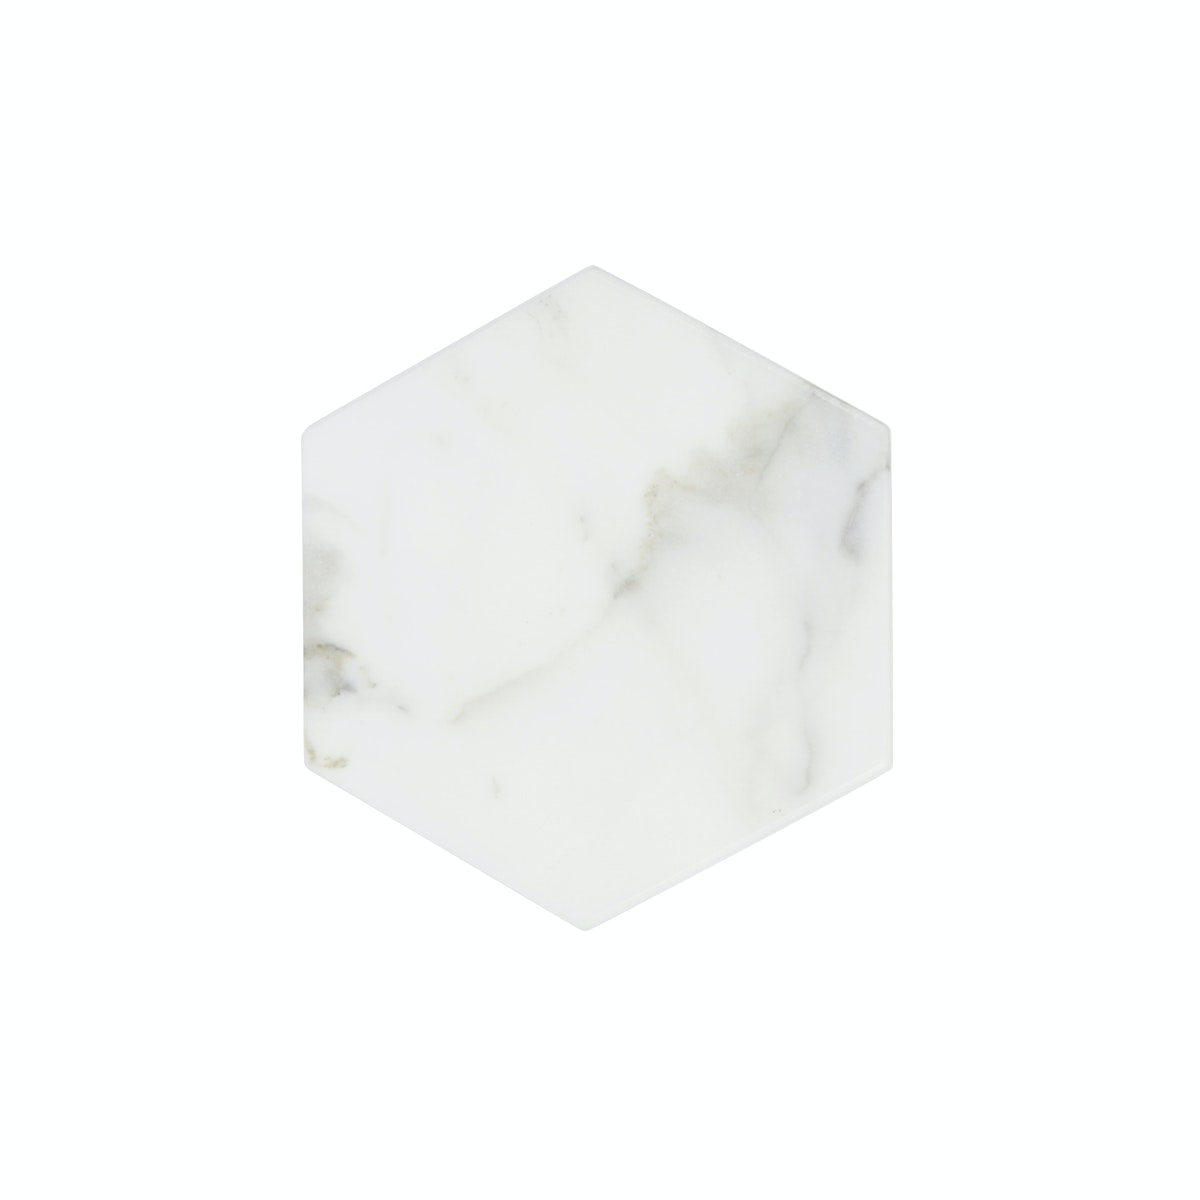 Glerry Home Decor Hexagon White Moonstone Marble D15